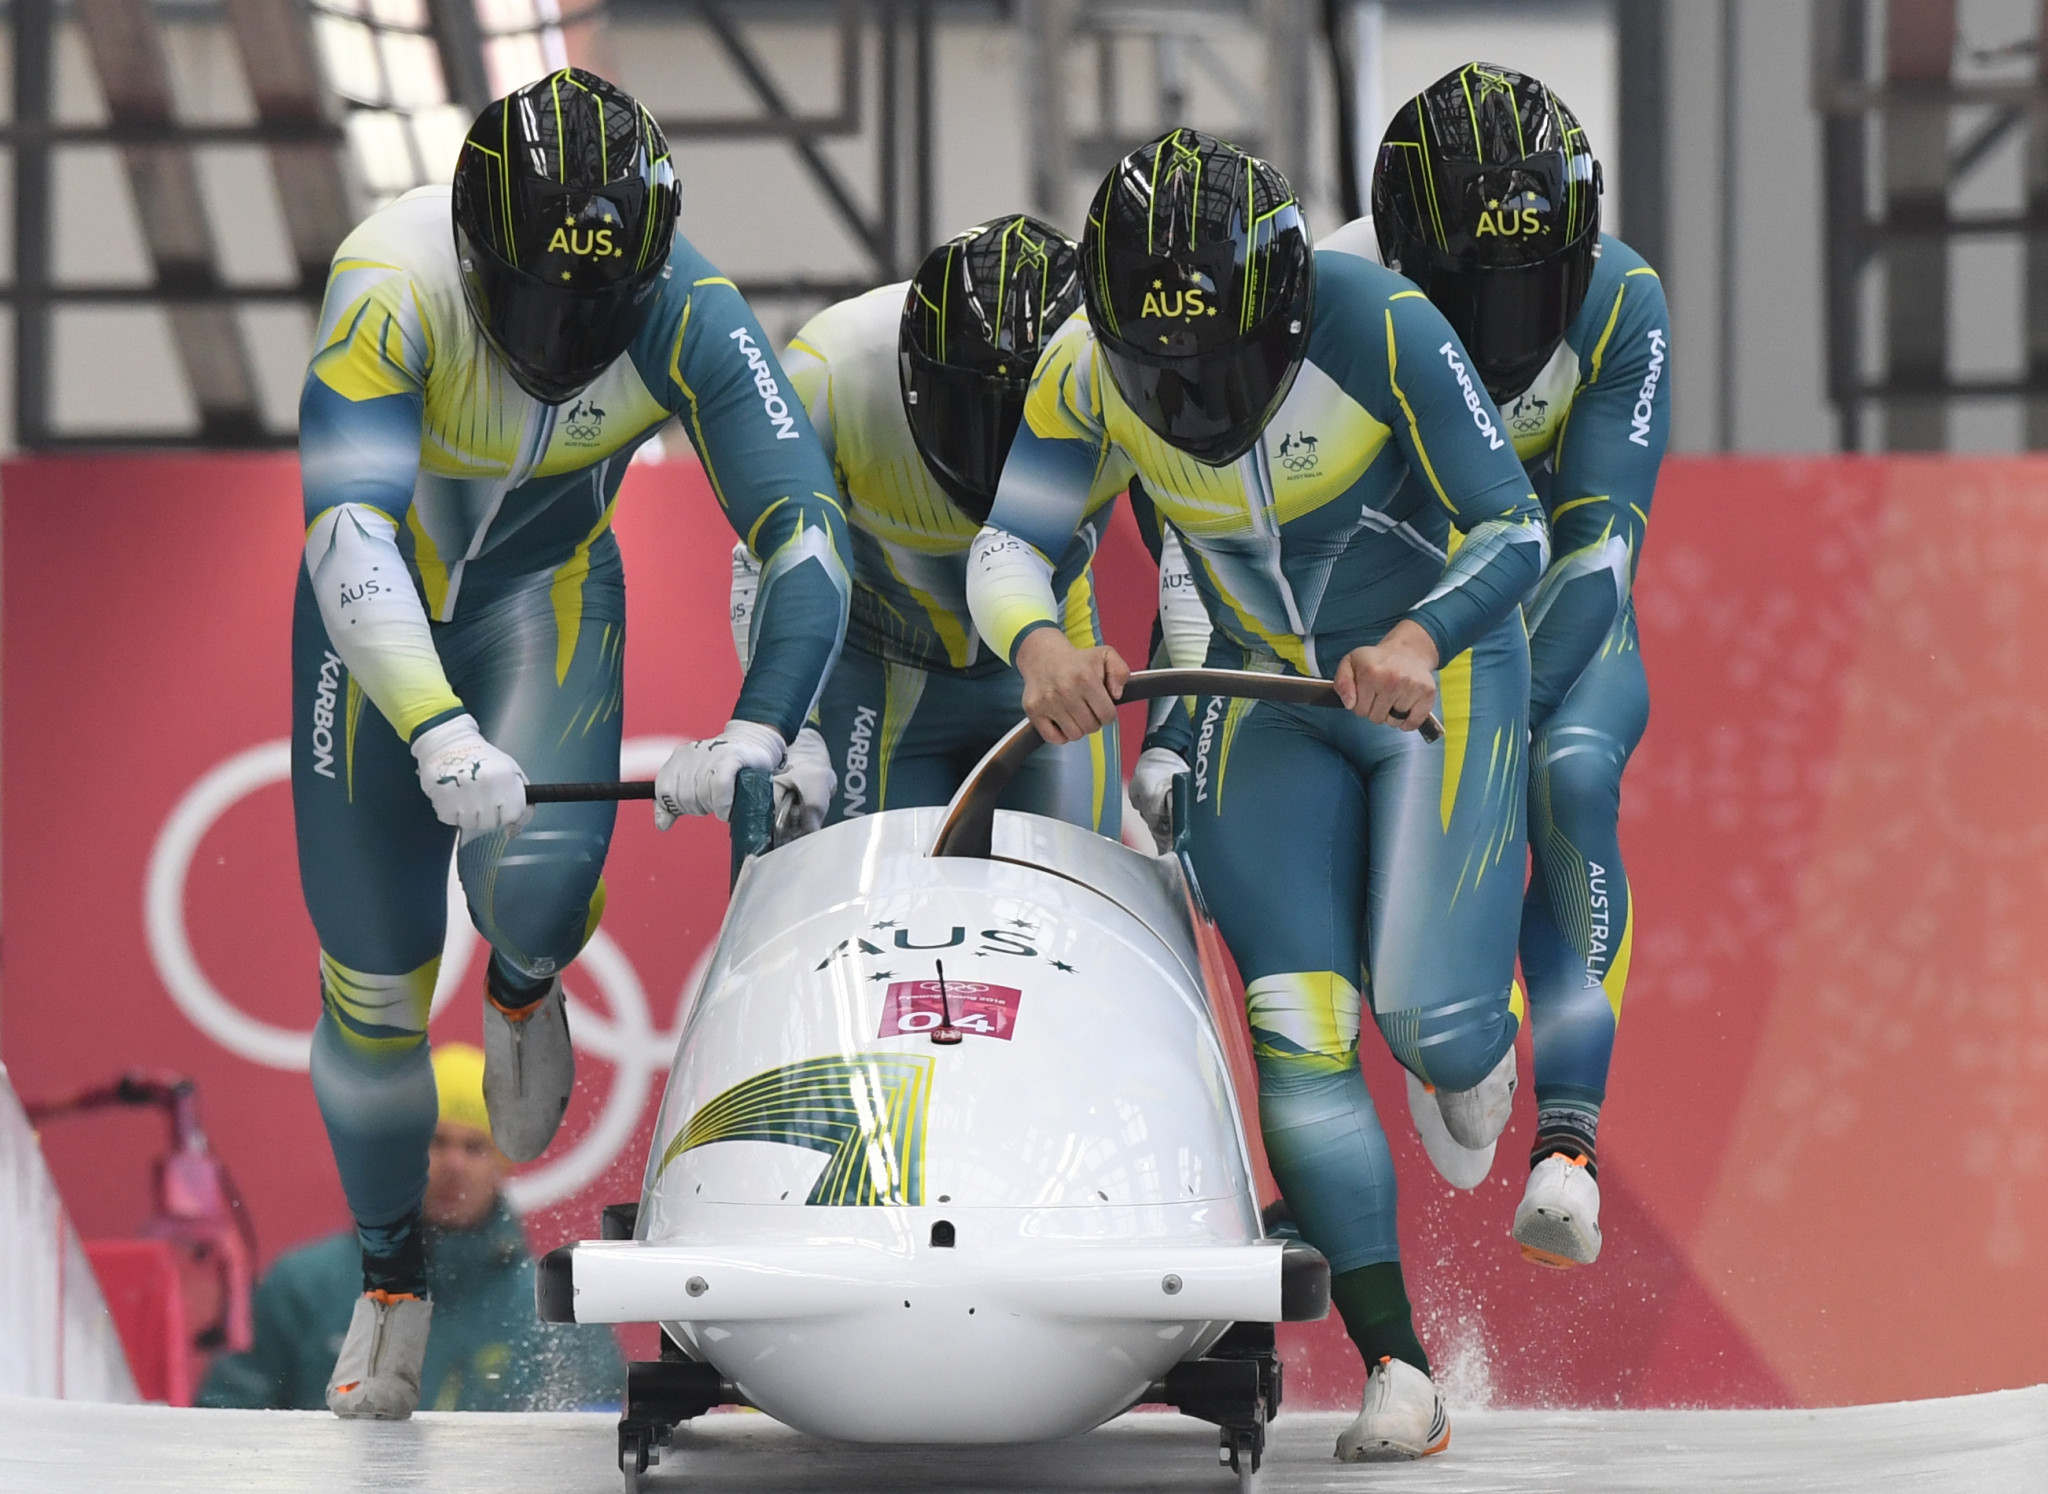 Australia's four-man bobsleigh team from Pyeongchang 2018 will be among those participating ©Getty Images